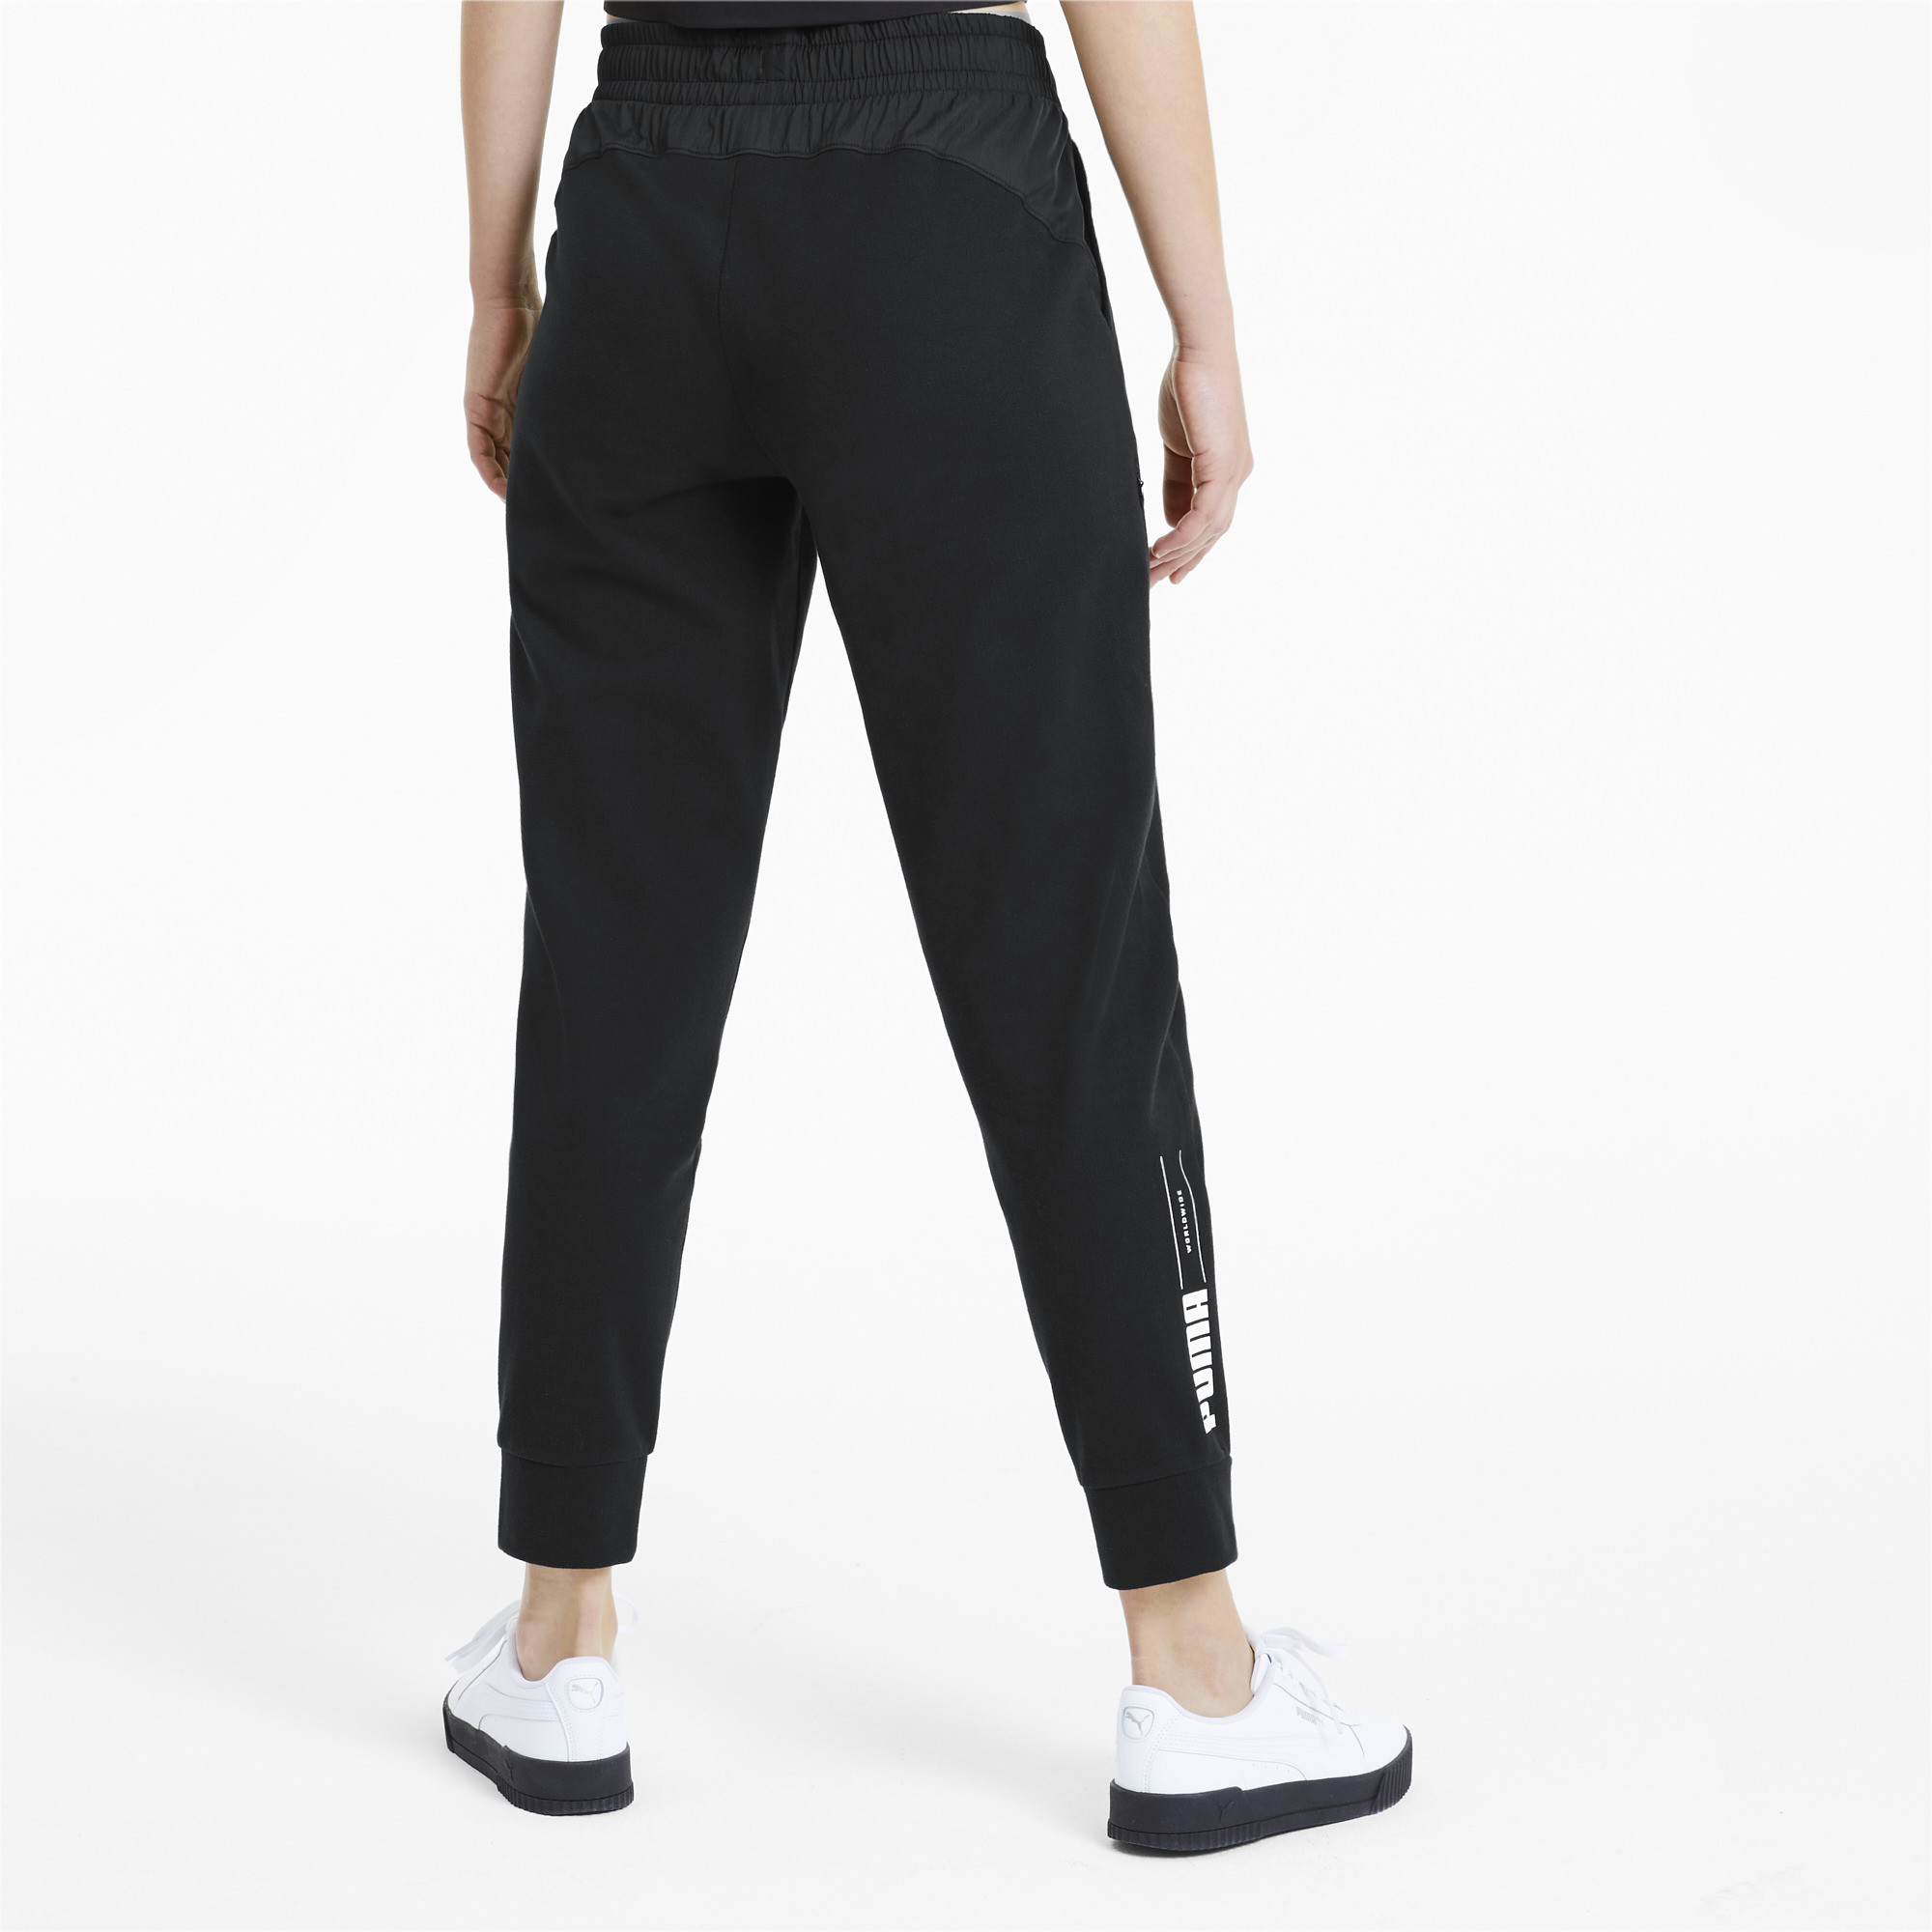 PUMA-Women-039-s-NU-TILITY-Sweatpants thumbnail 12